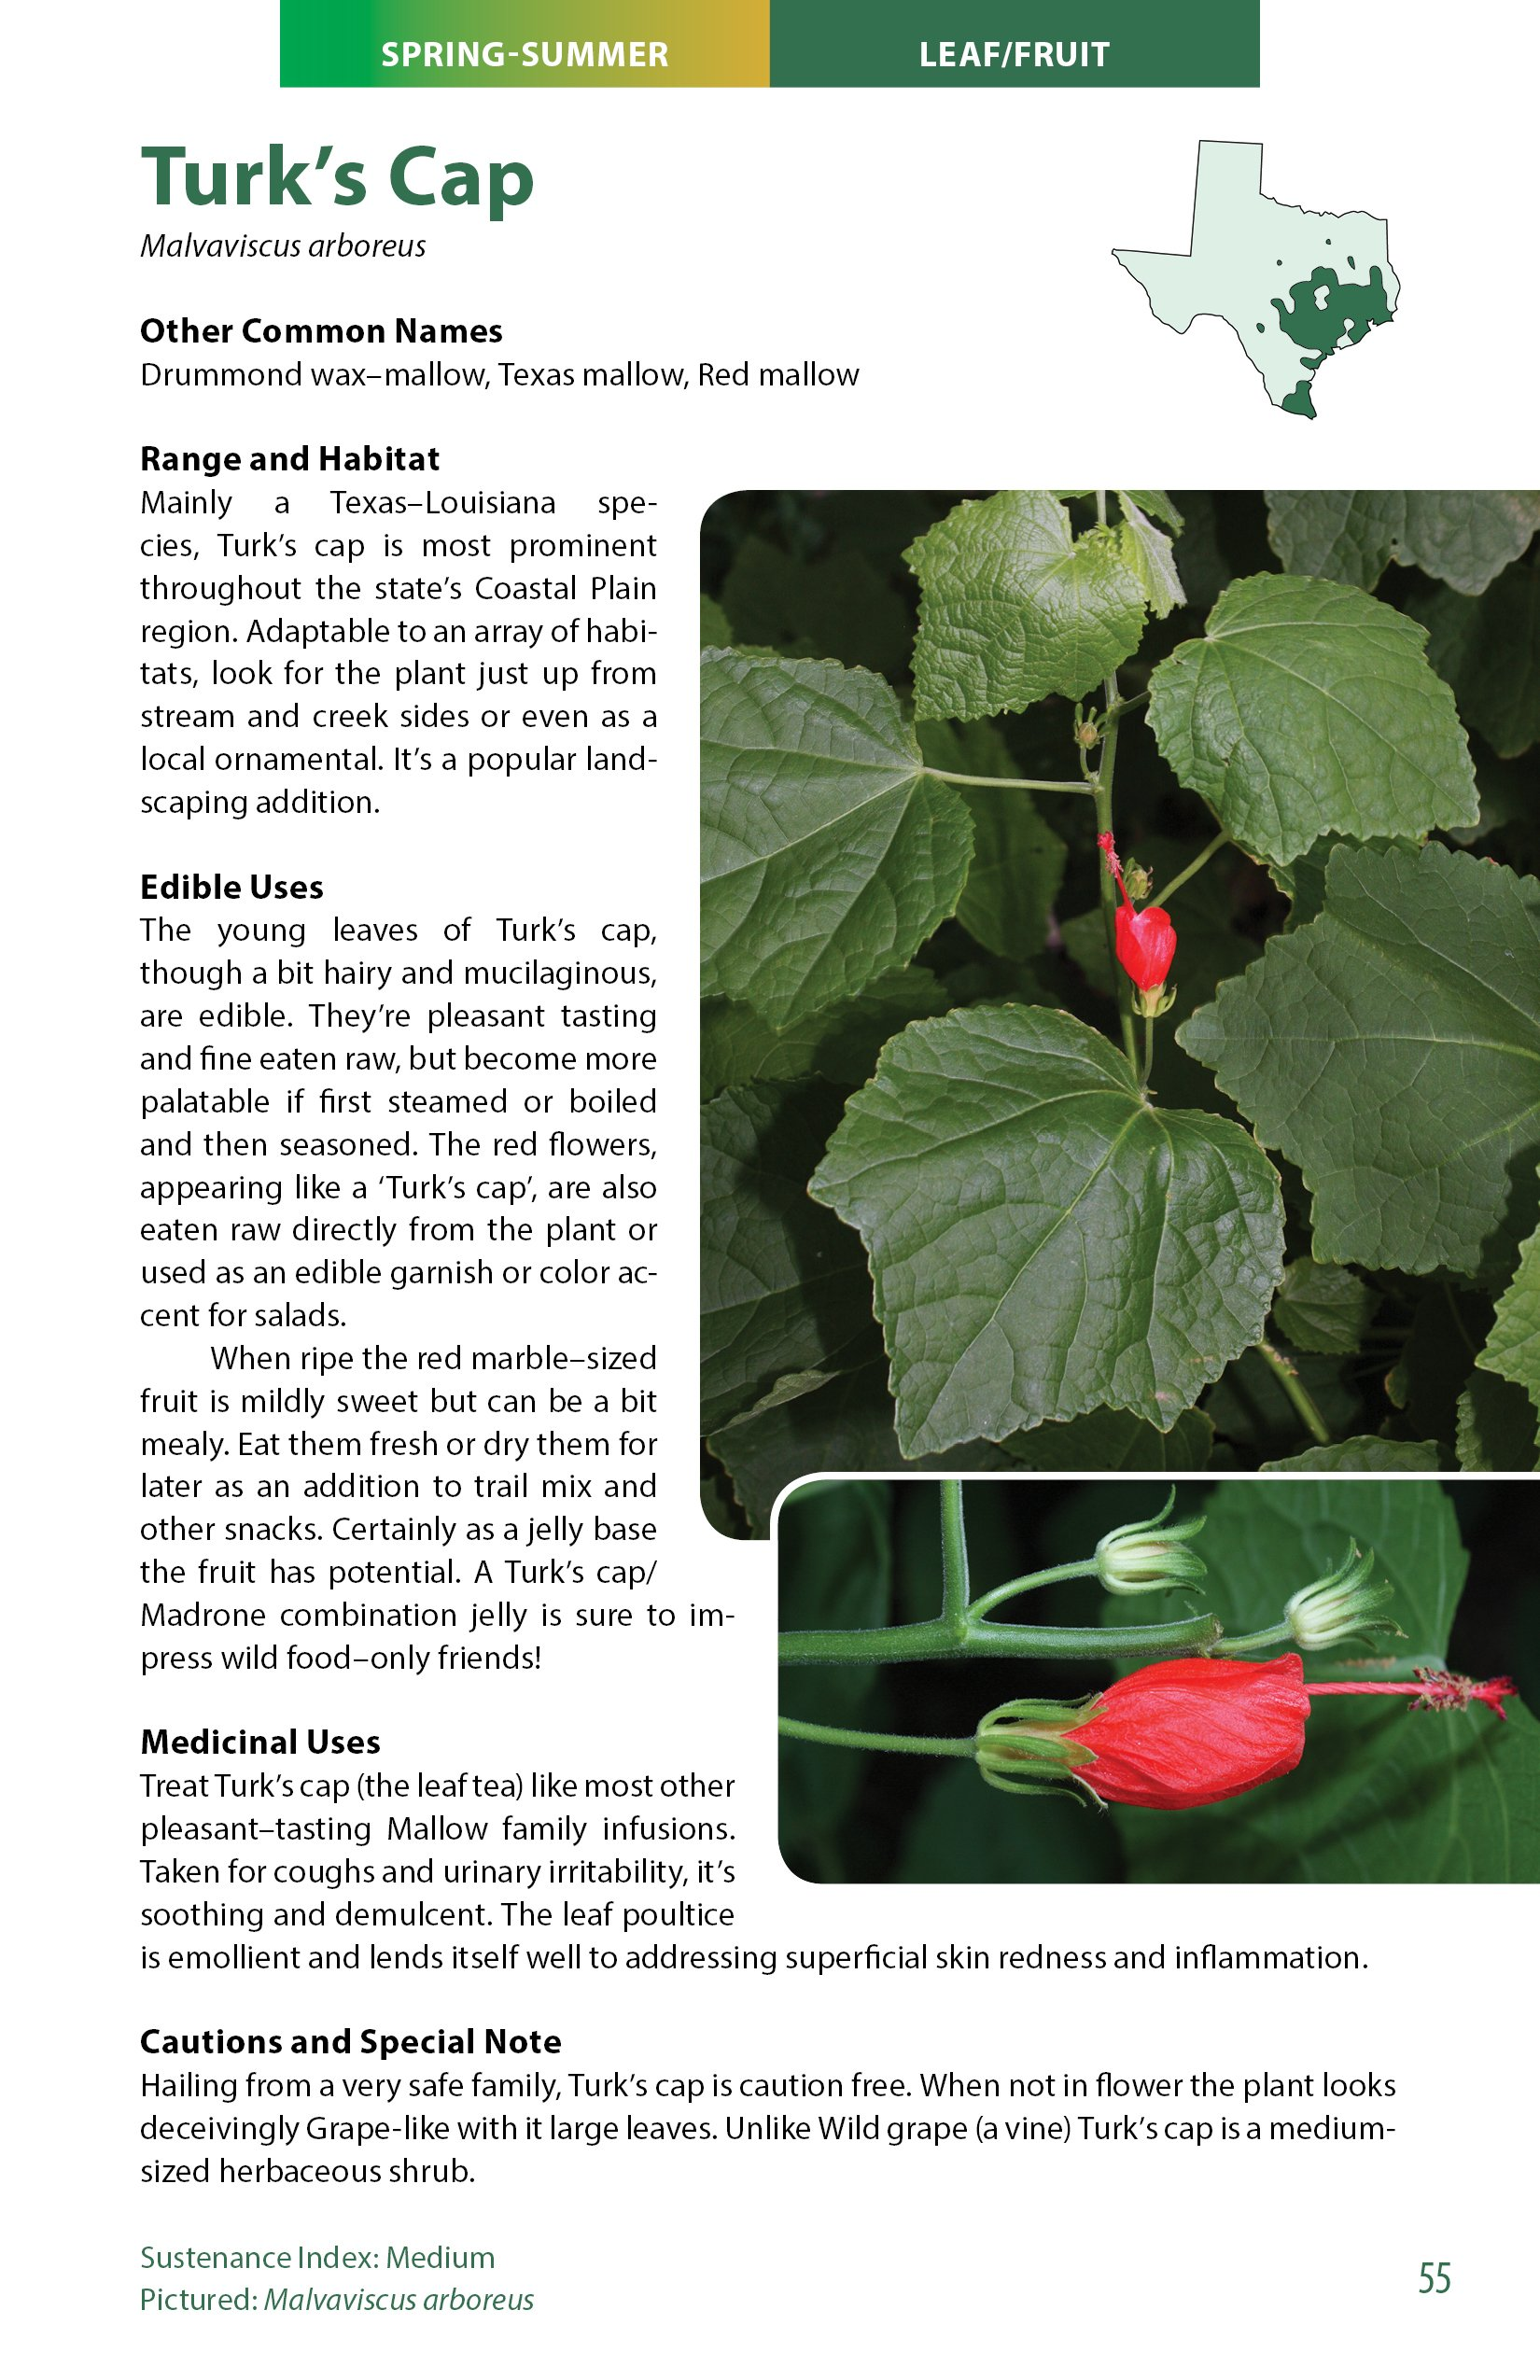 Wild Edible Plants Of Texas A Pocket Guide To The Identification Collection Preparation And Use Of 60 Wild Plants Of The Lone Star State Charles W Kane 9780977133390 Amazon Com Books